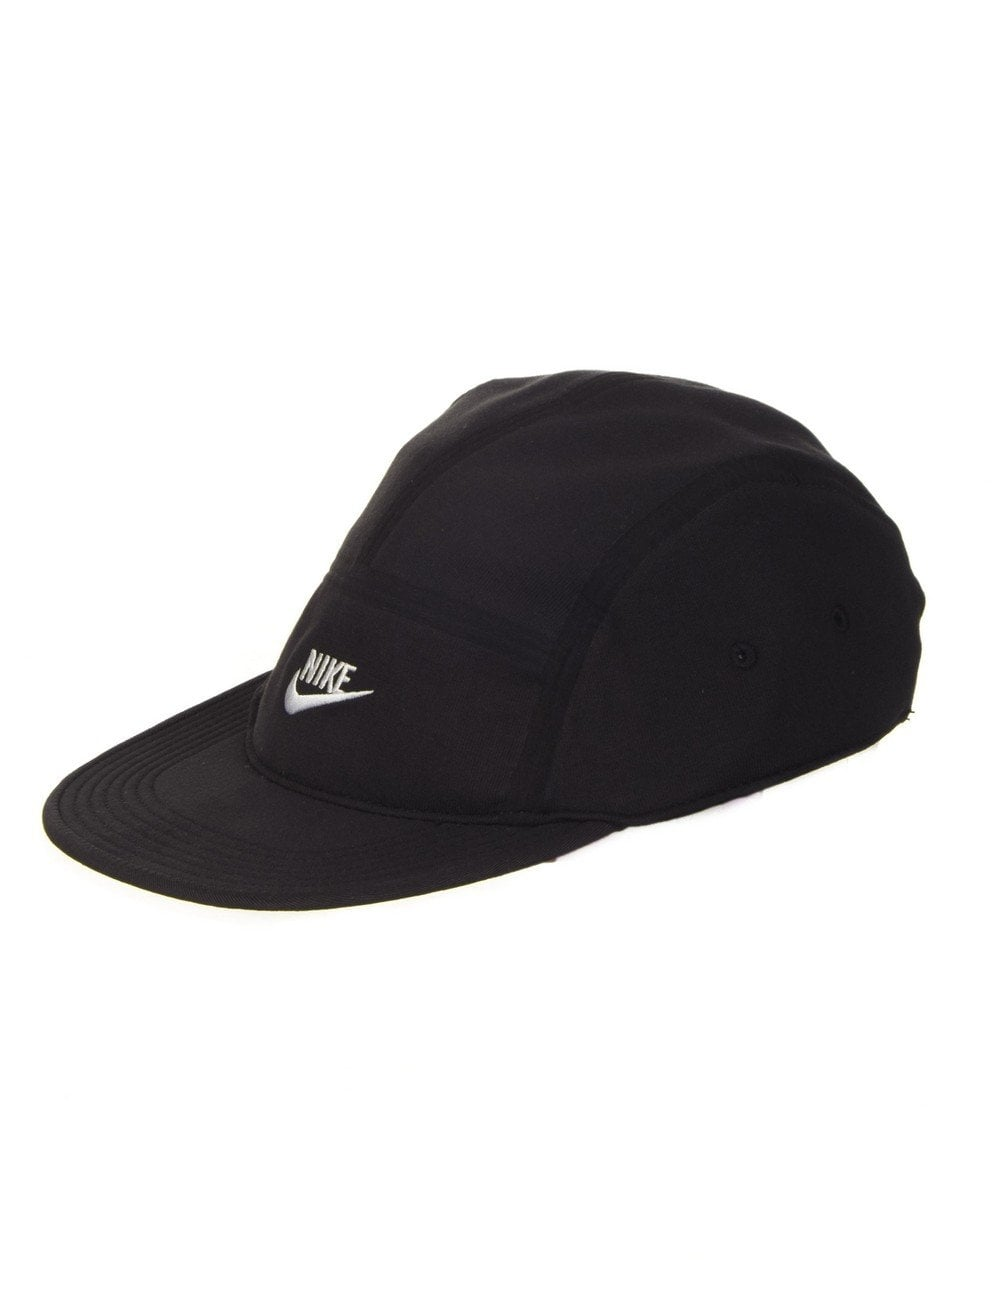 Nike AW84 Tech 5 Panel Hat - Black - Accessories from Fat Buddha ... ac04d5a8e7c9